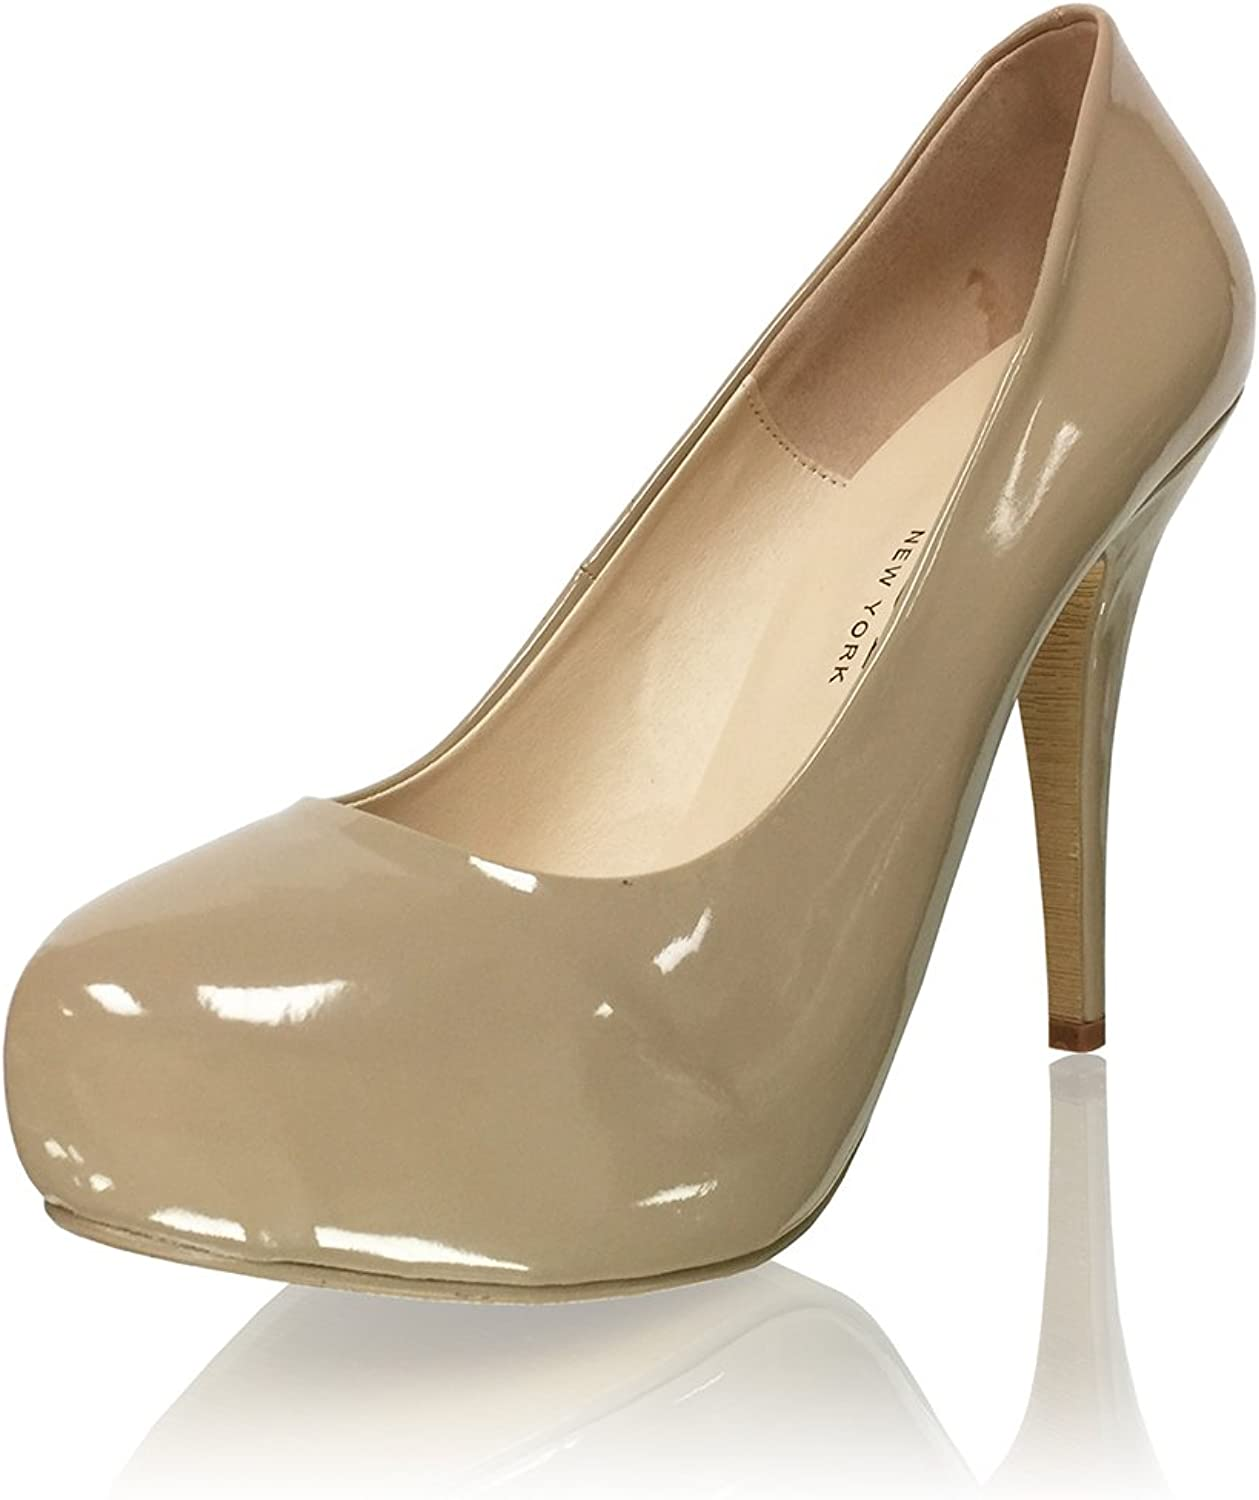 Marc Defang New York Women's 5  Rounded Closed Toe Patent Leather Pumps